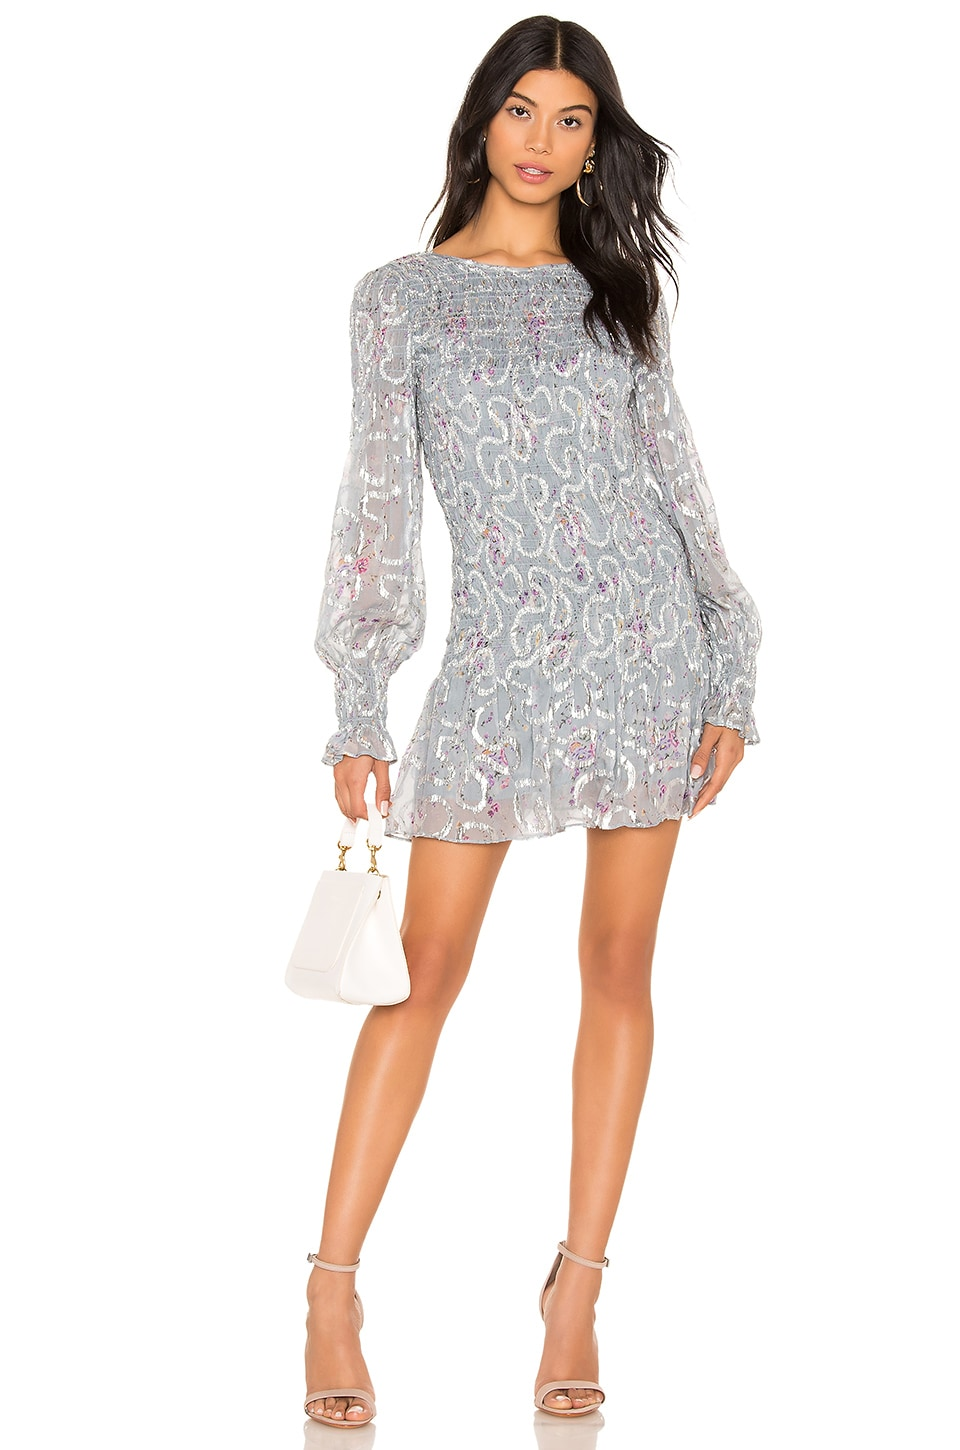 LoveShackFancy Scarlett Mini Dress in Silver Lake